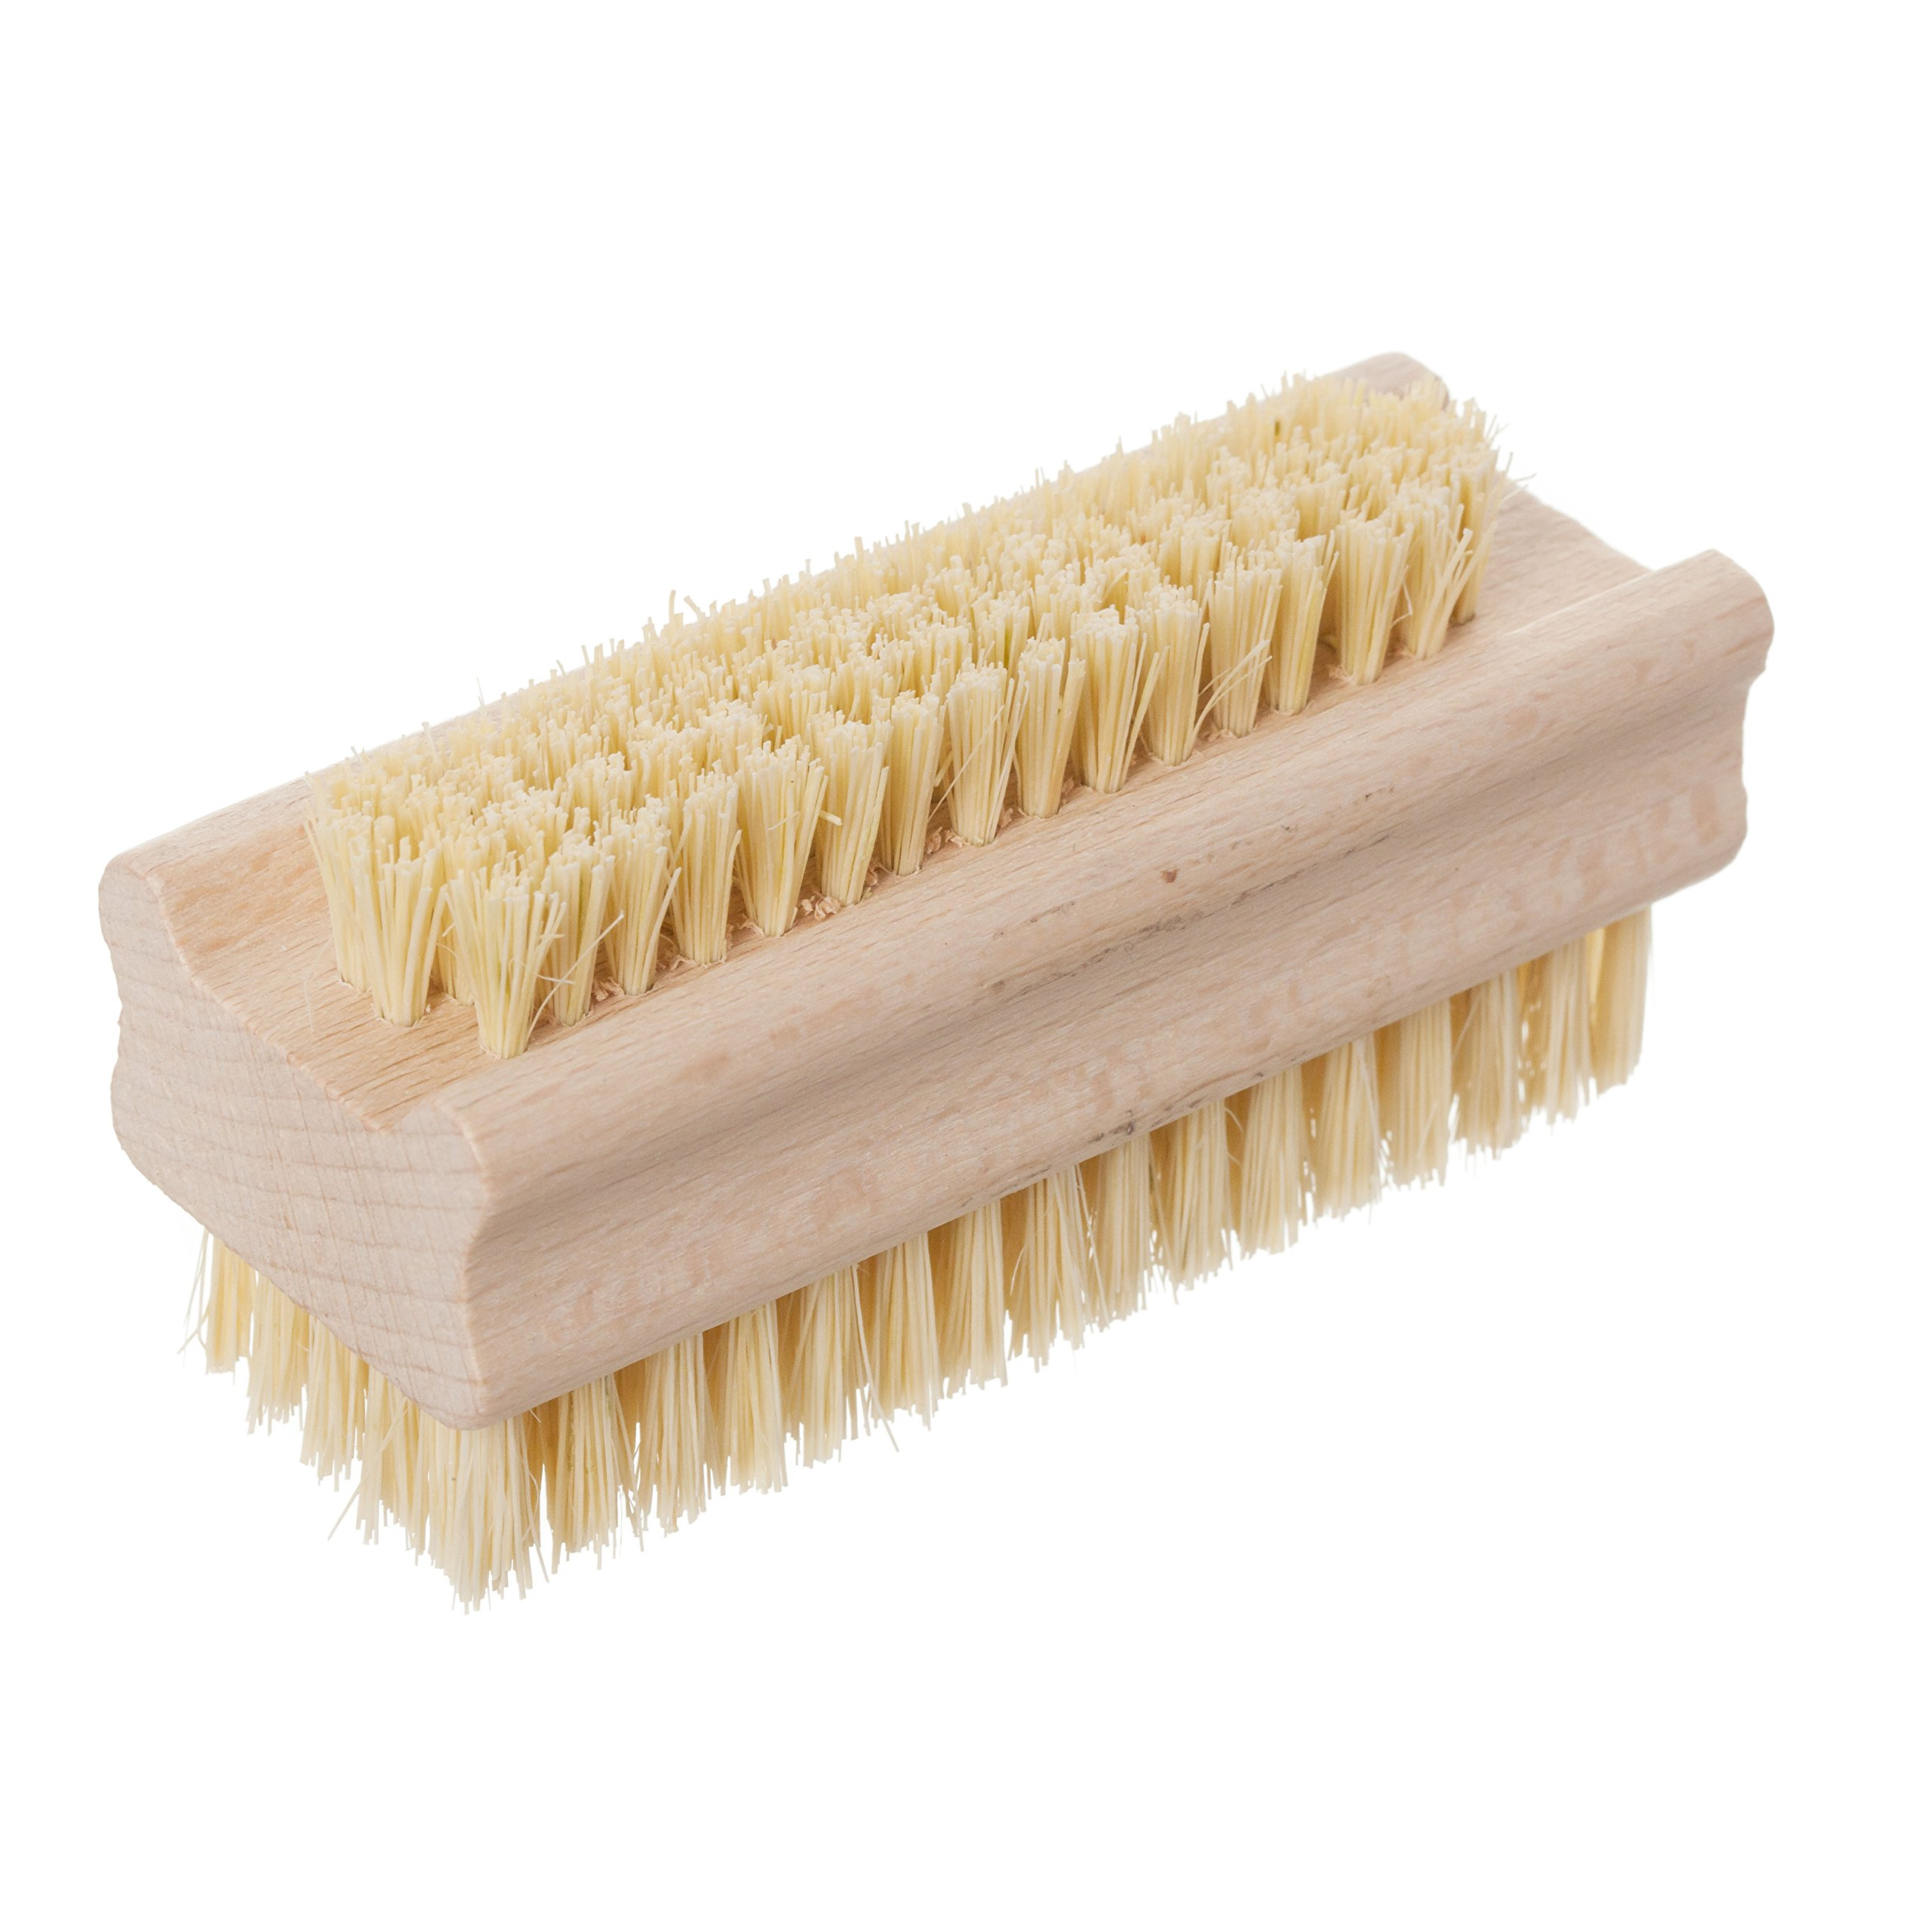 Redecker Tampico Fiber and Beechwood Nailbrush, 3-5/8'' by REDECKER